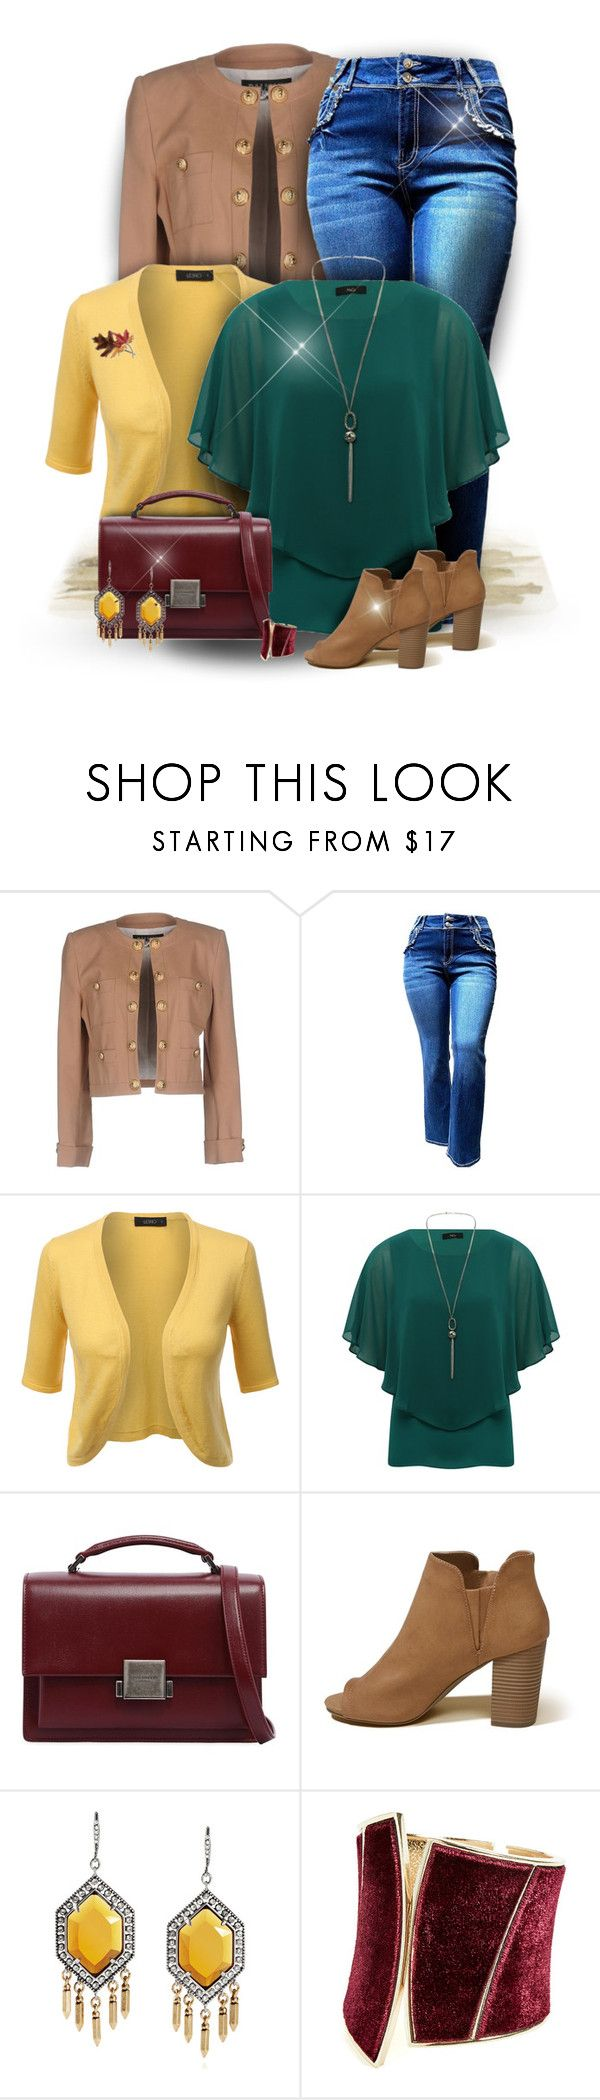 """""""Layered Up"""" by majezy ❤ liked on Polyvore featuring Balmain, LE3NO, M&Co, Yves Saint Laurent, Hollister Co., GUESS by Marciano and Anne Klein"""